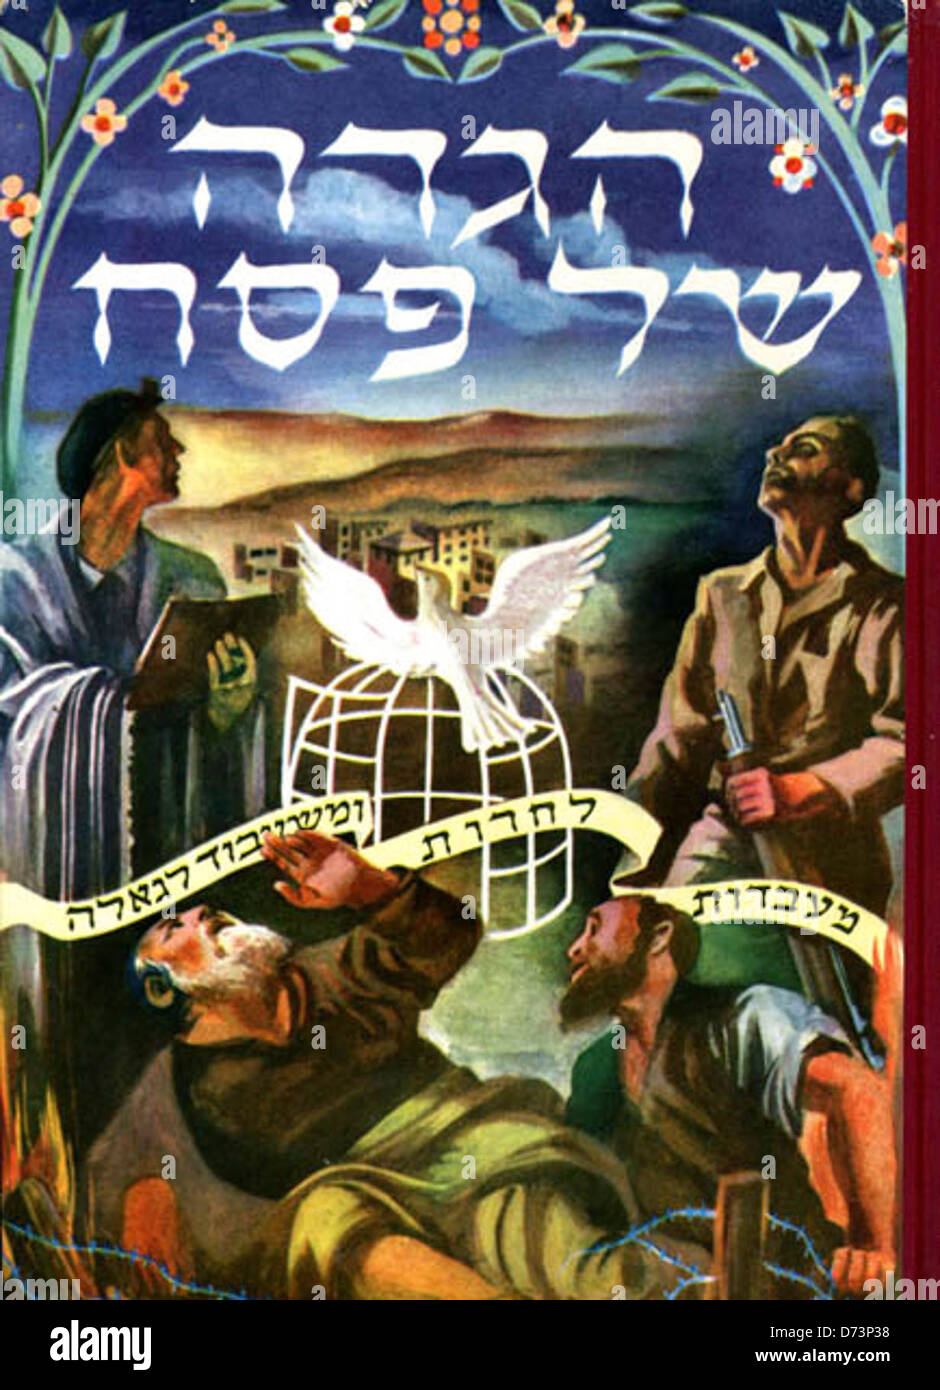 Book cover to the Haggadah of Passover - Stock Image